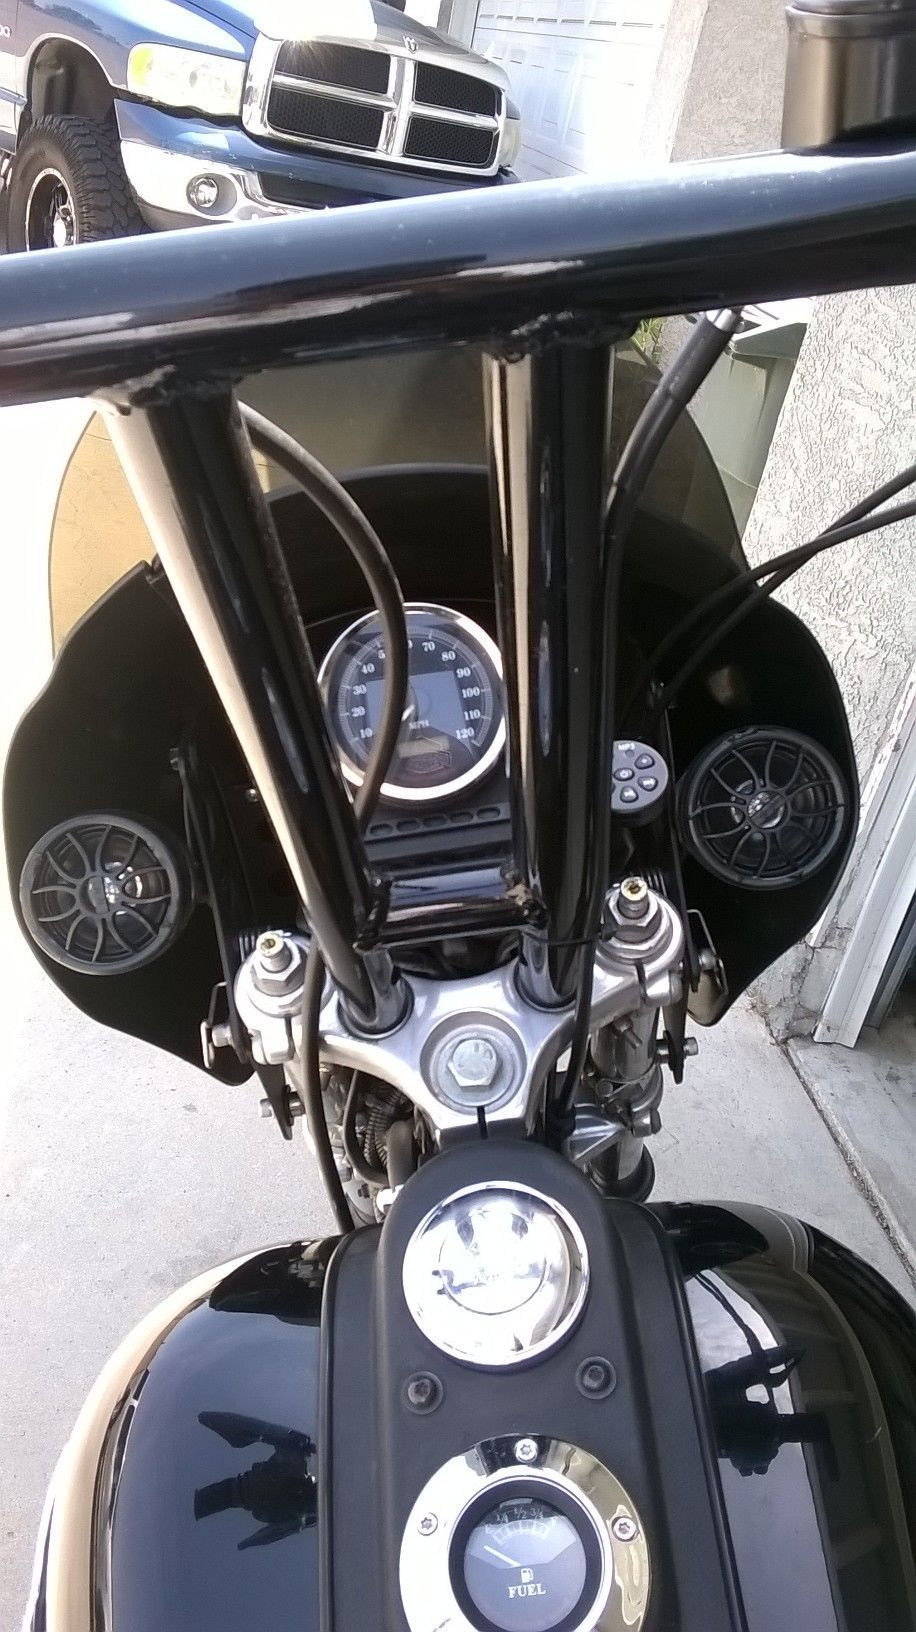 Thug style club style dyna pic s page 762 harley davidson forums